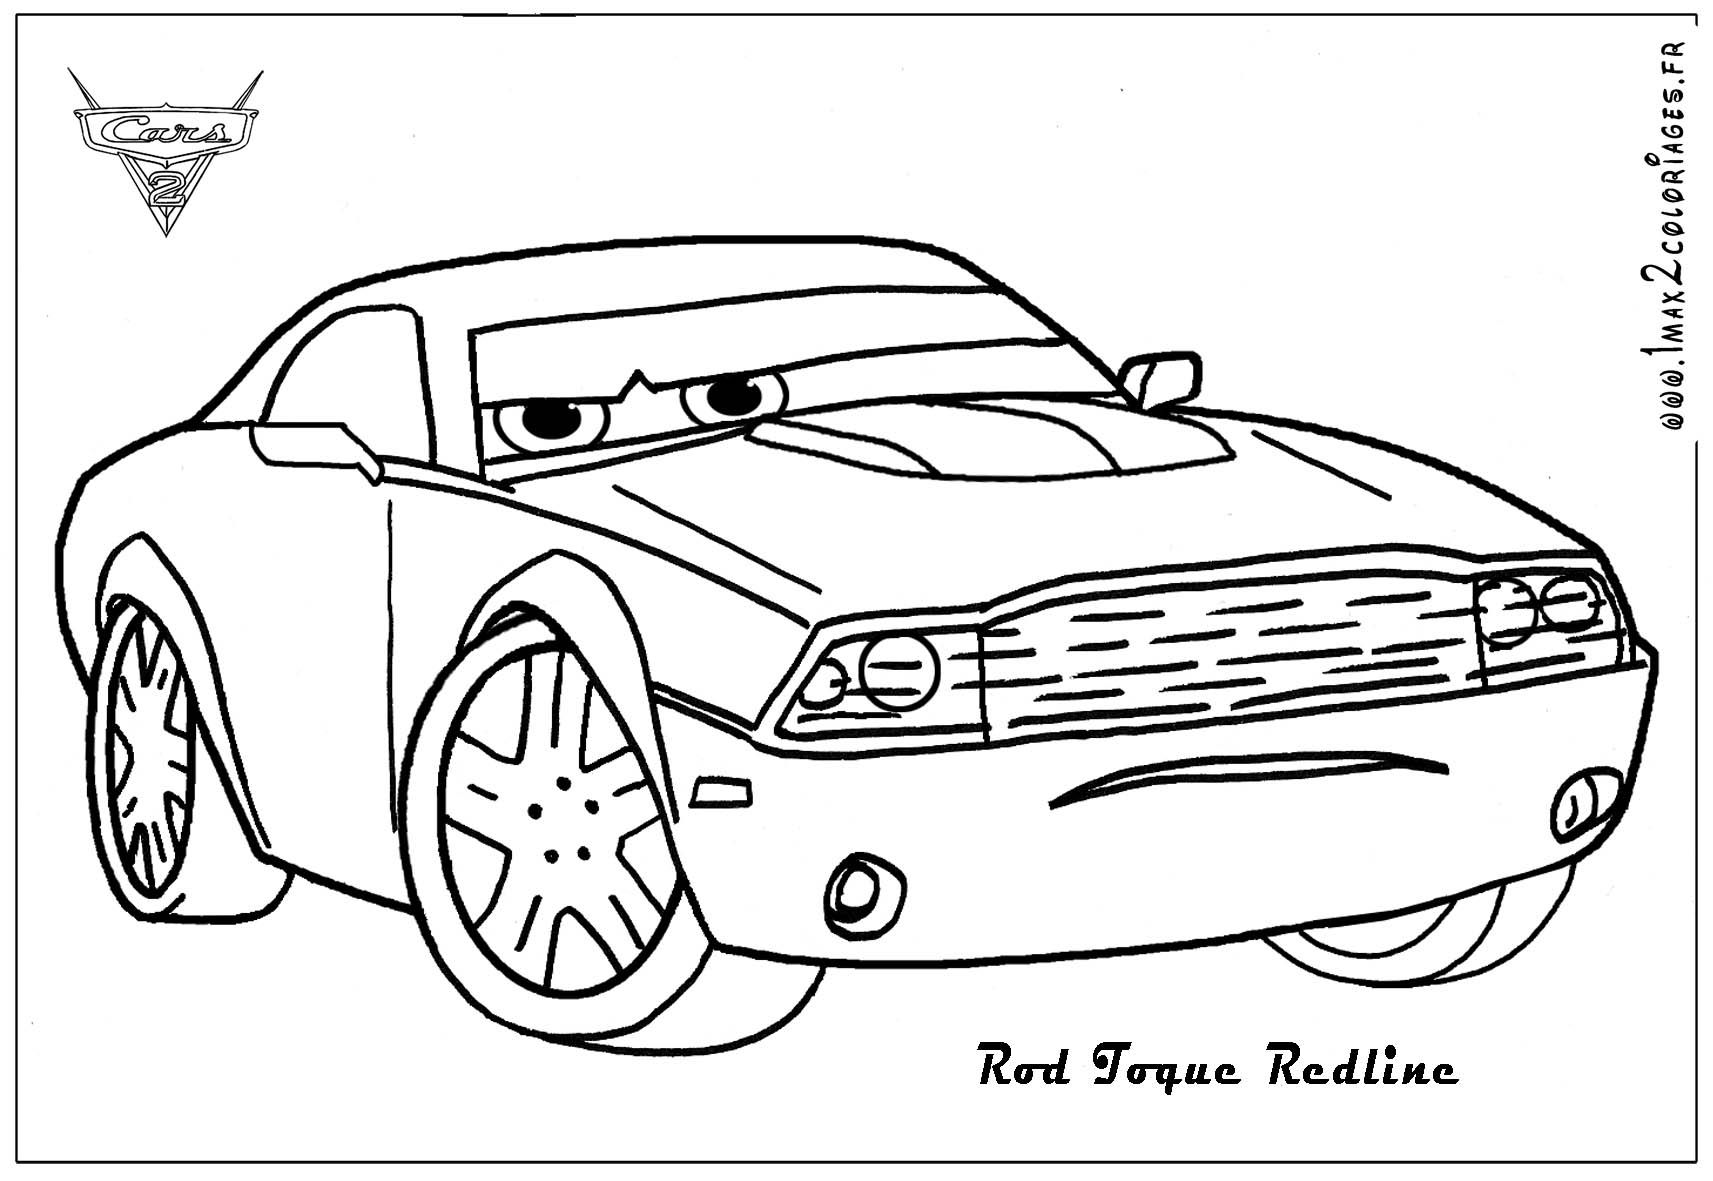 Ausmalbilder Zum Ausdrucken Cars : Cars 2 Printable Coloring Pages Pictures Coloring Page Cars 2